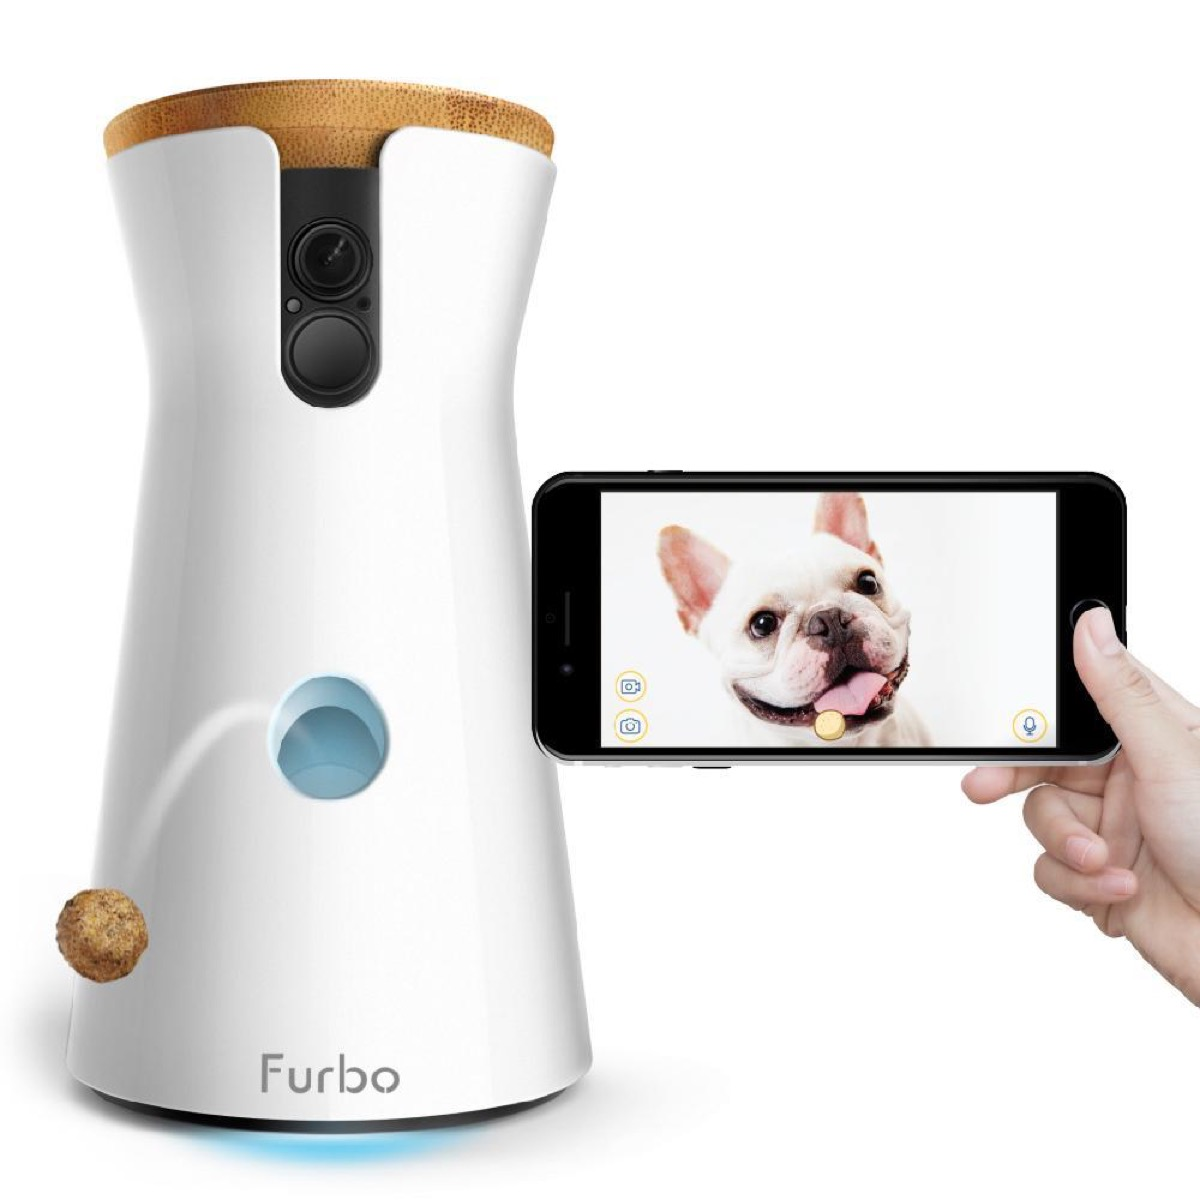 furbo dog camera, gifts for girlfriend